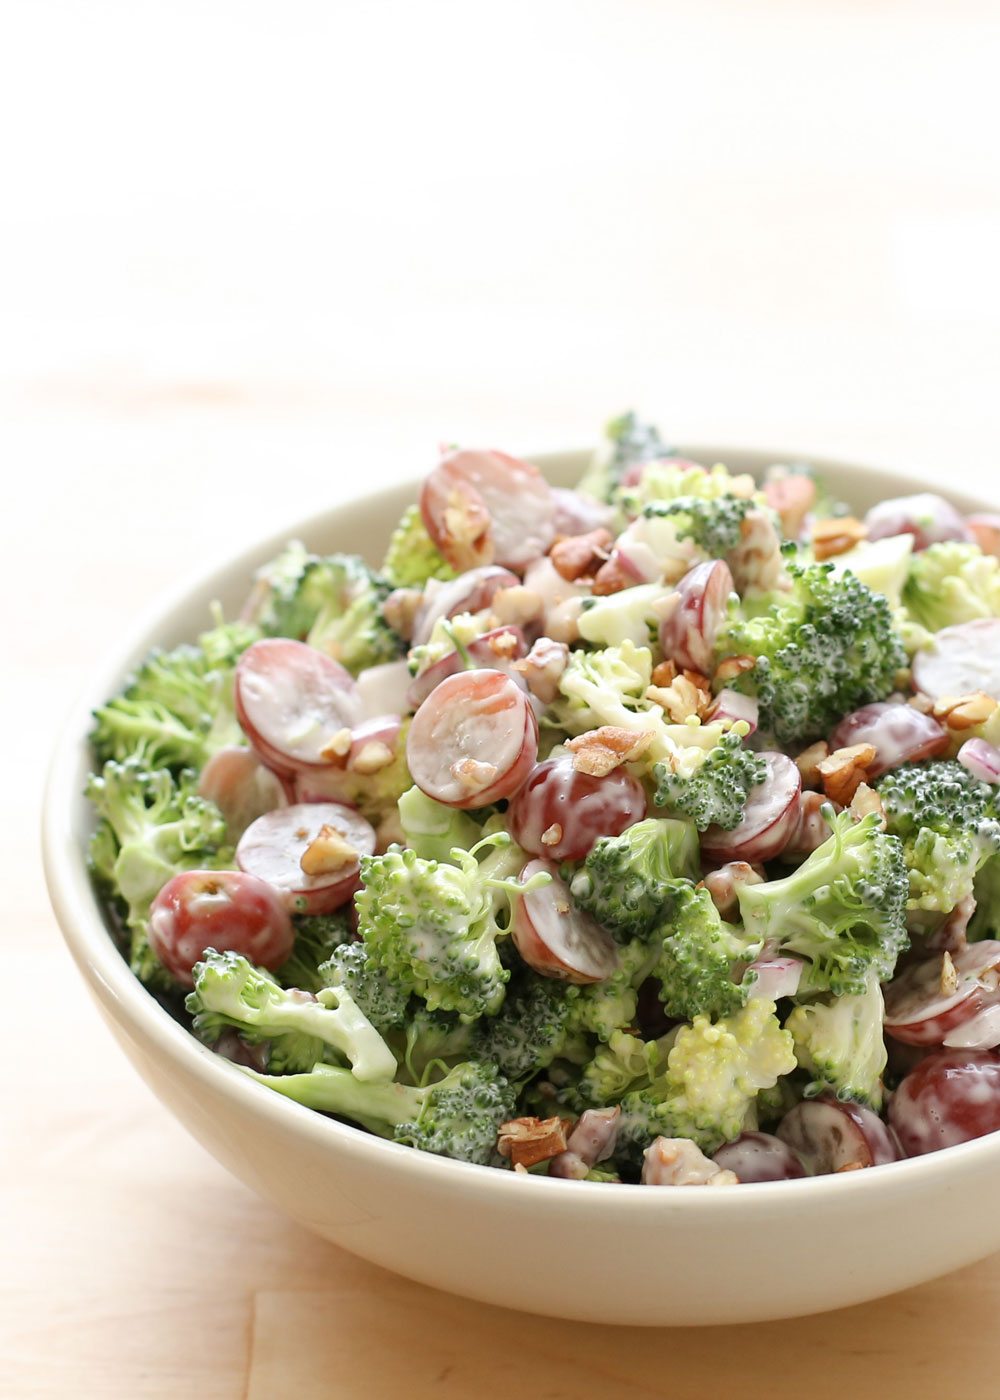 Broccoli Salad with Grapes